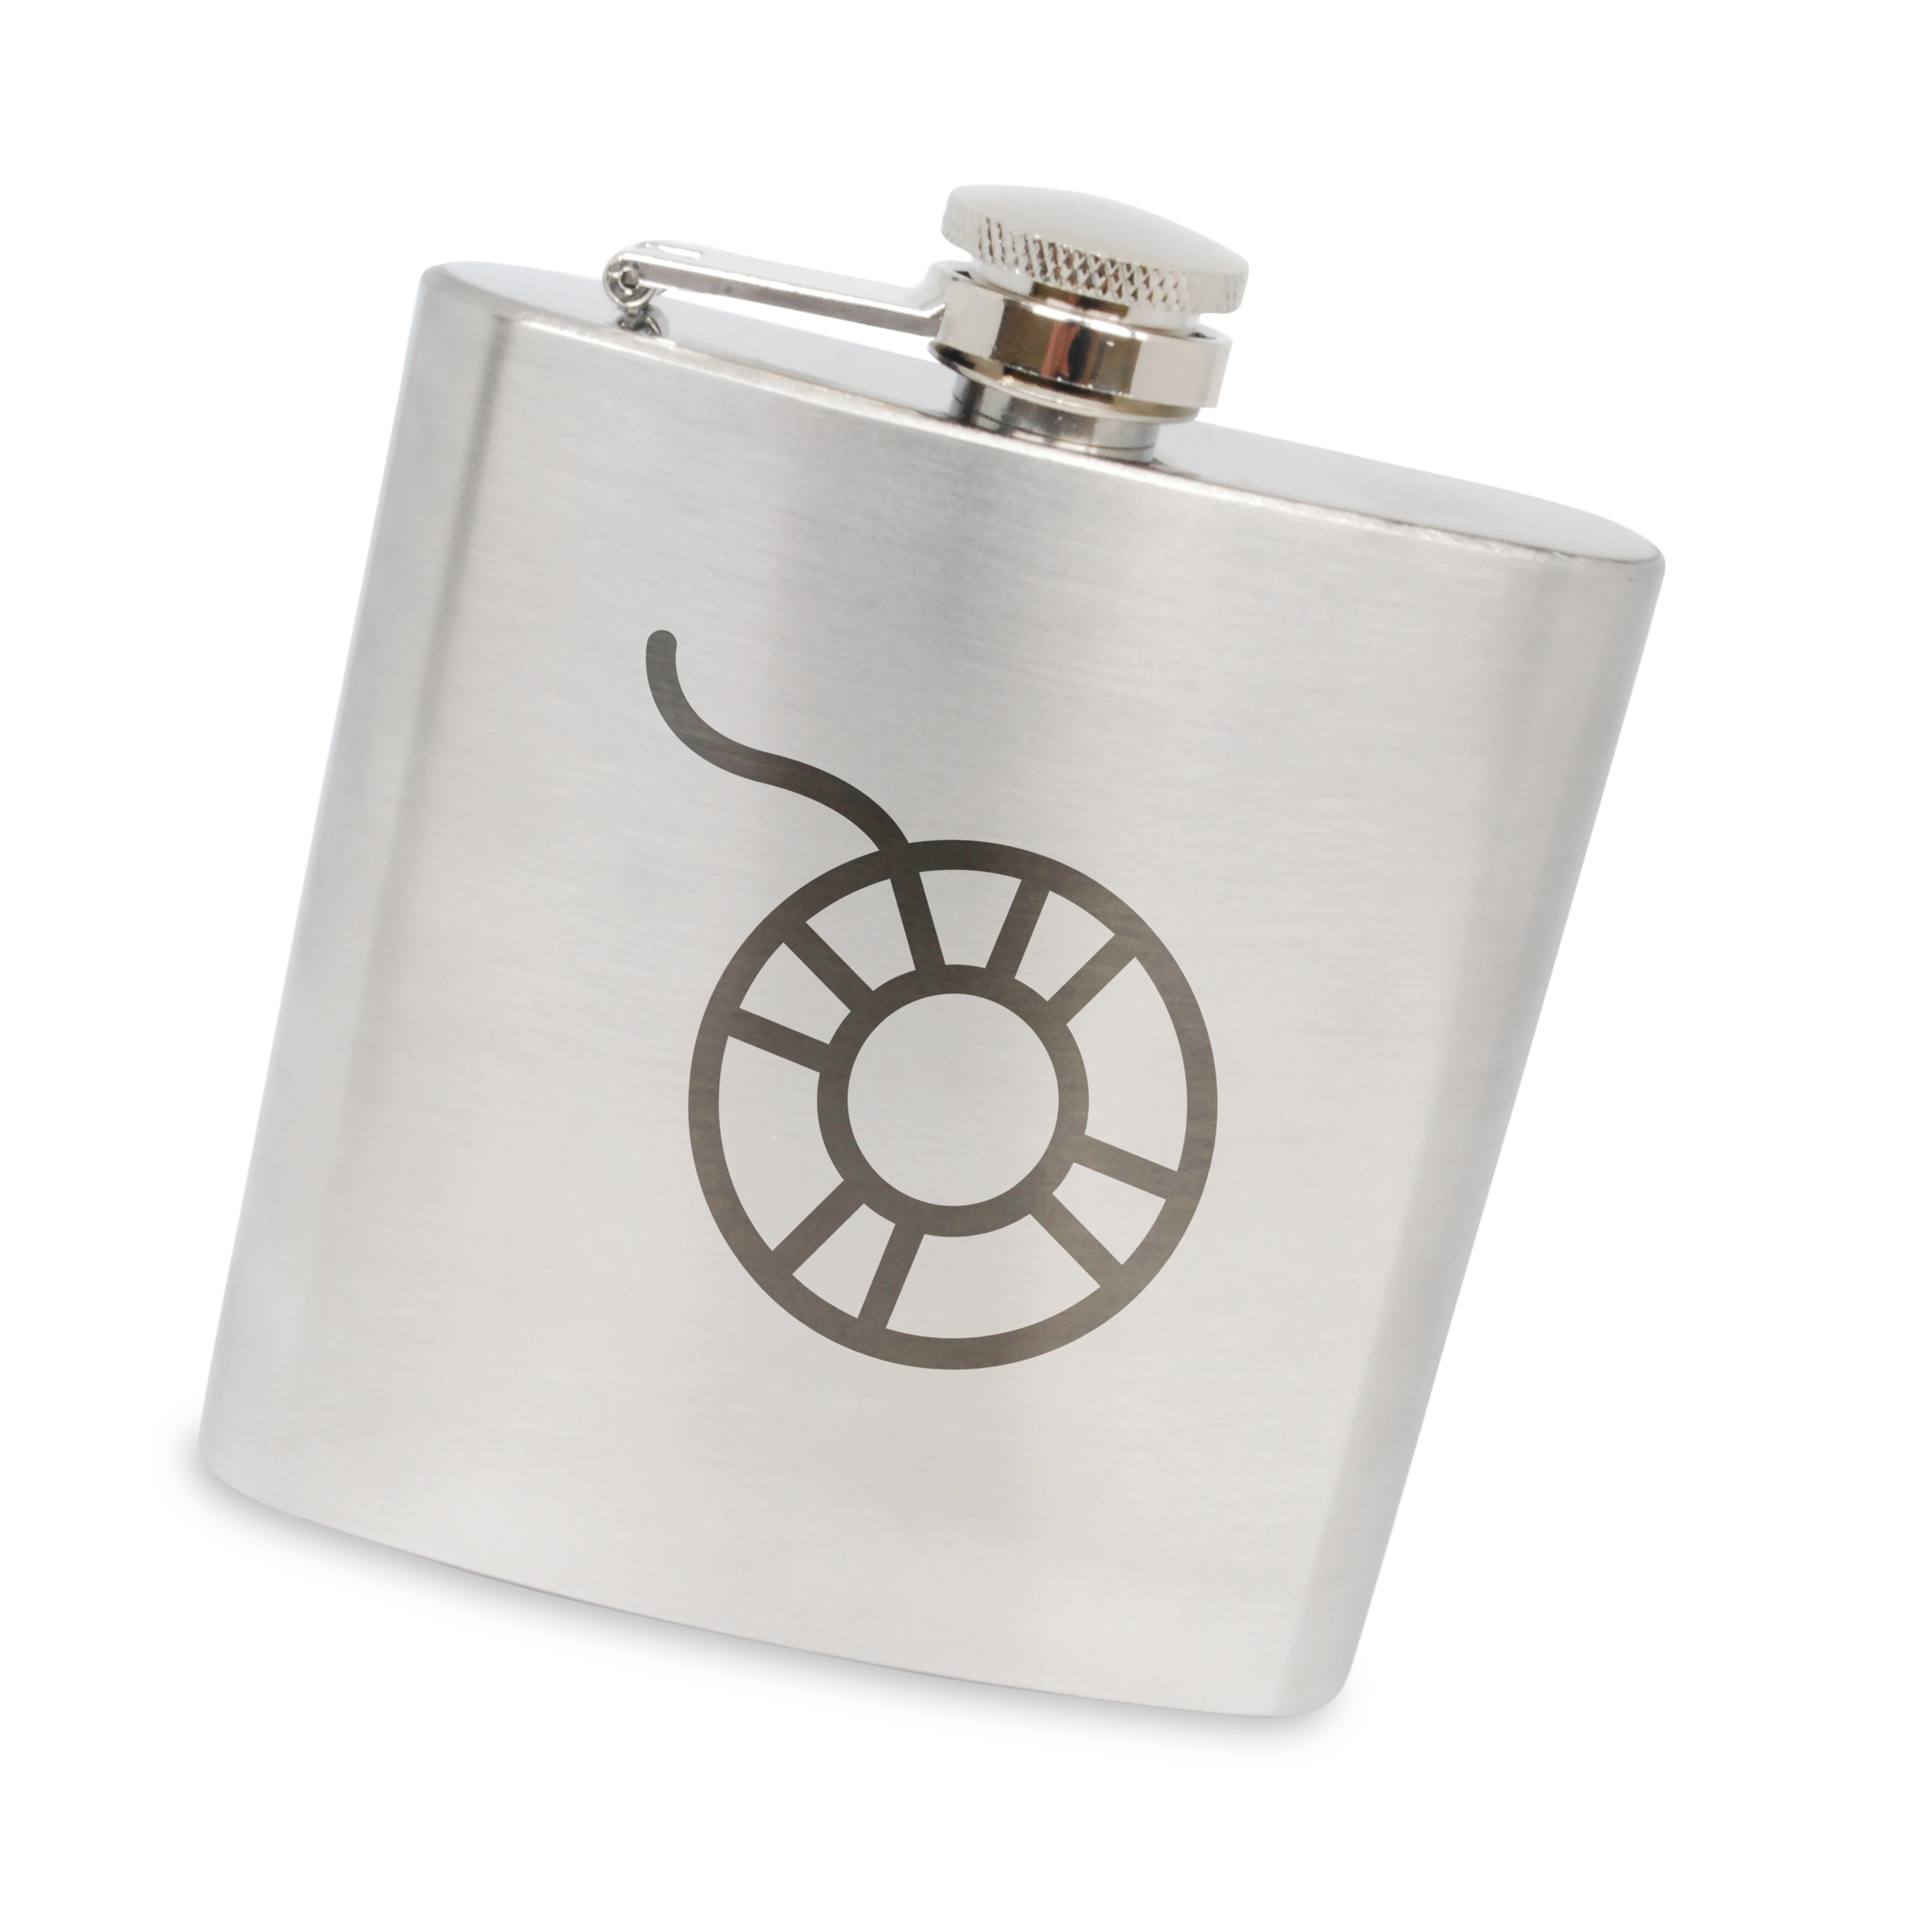 Preserver Stainless Steel 6 Oz Flask. Made In The Usa.